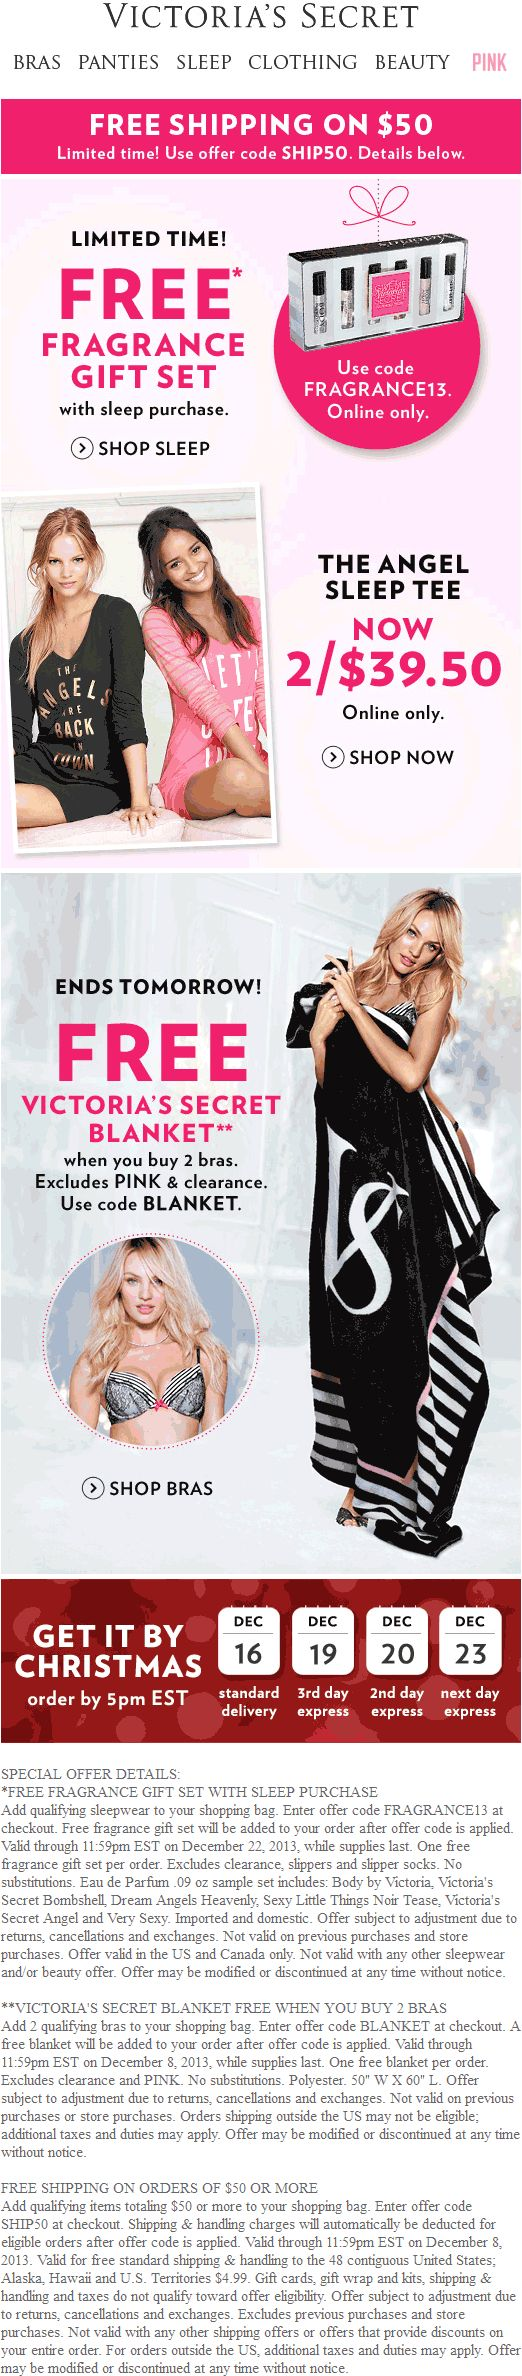 Victorias secret coupon victorias secret promo code from the coupons app free blanket with your bras more at victorias secret or online via promo code